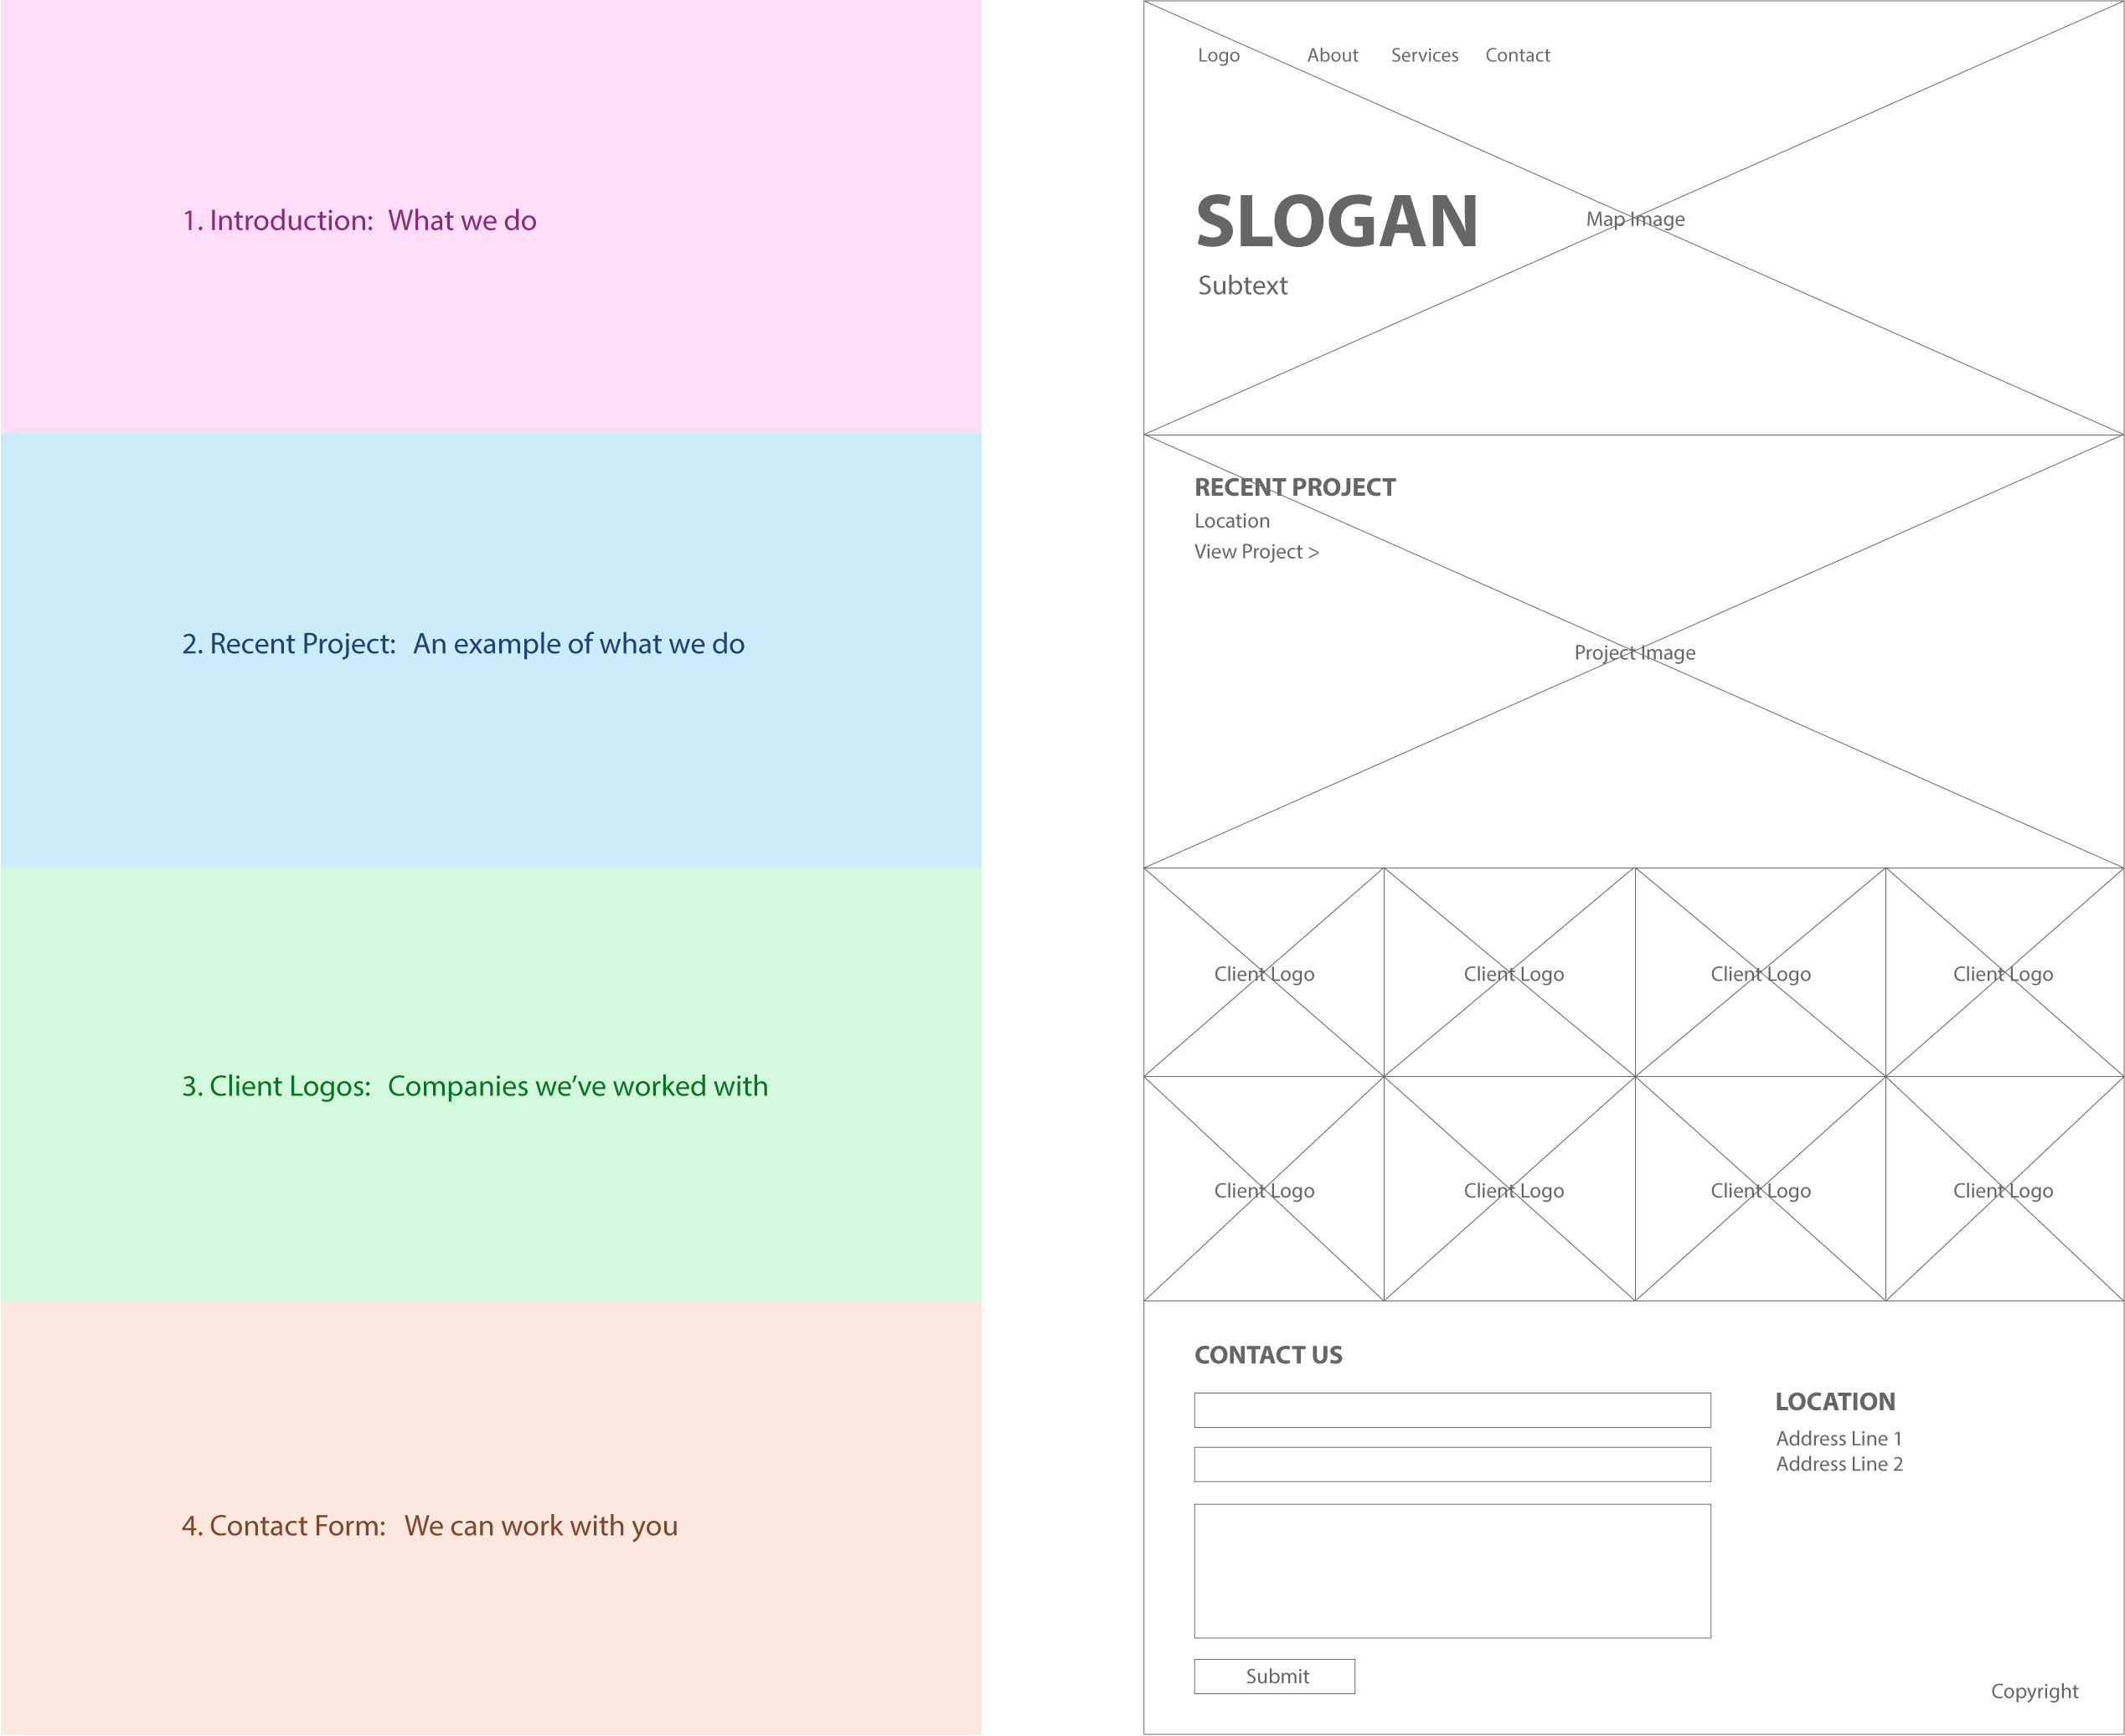 Exhibau wireframe concept and layout